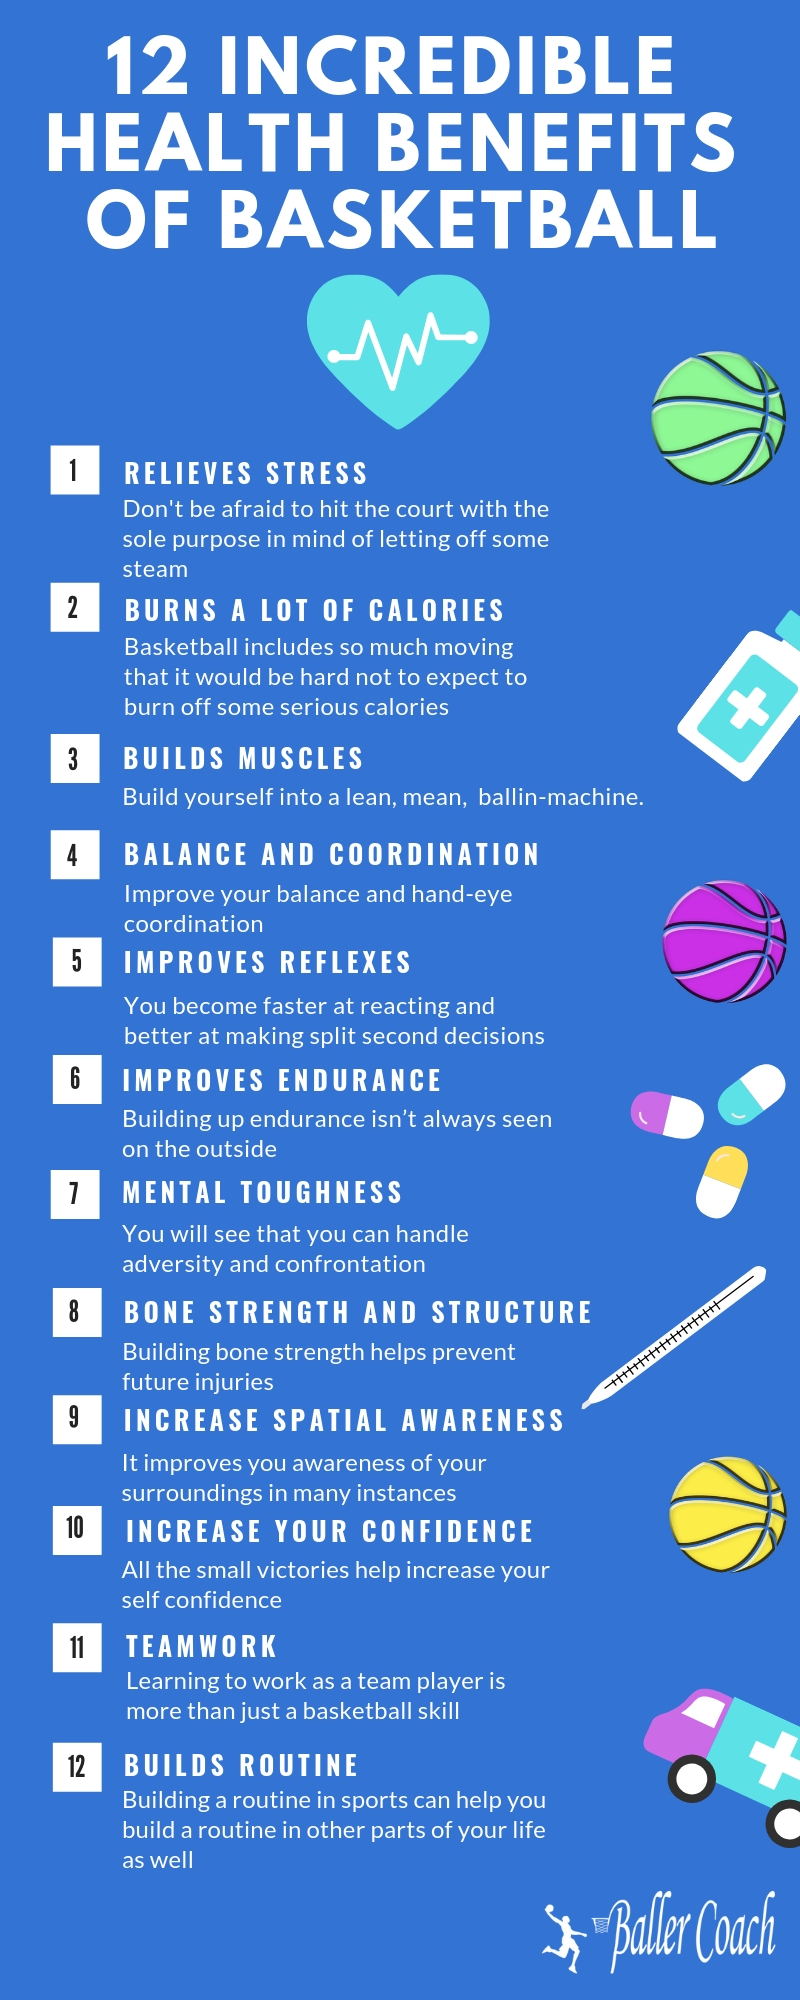 12 health benefits of basketball infographic